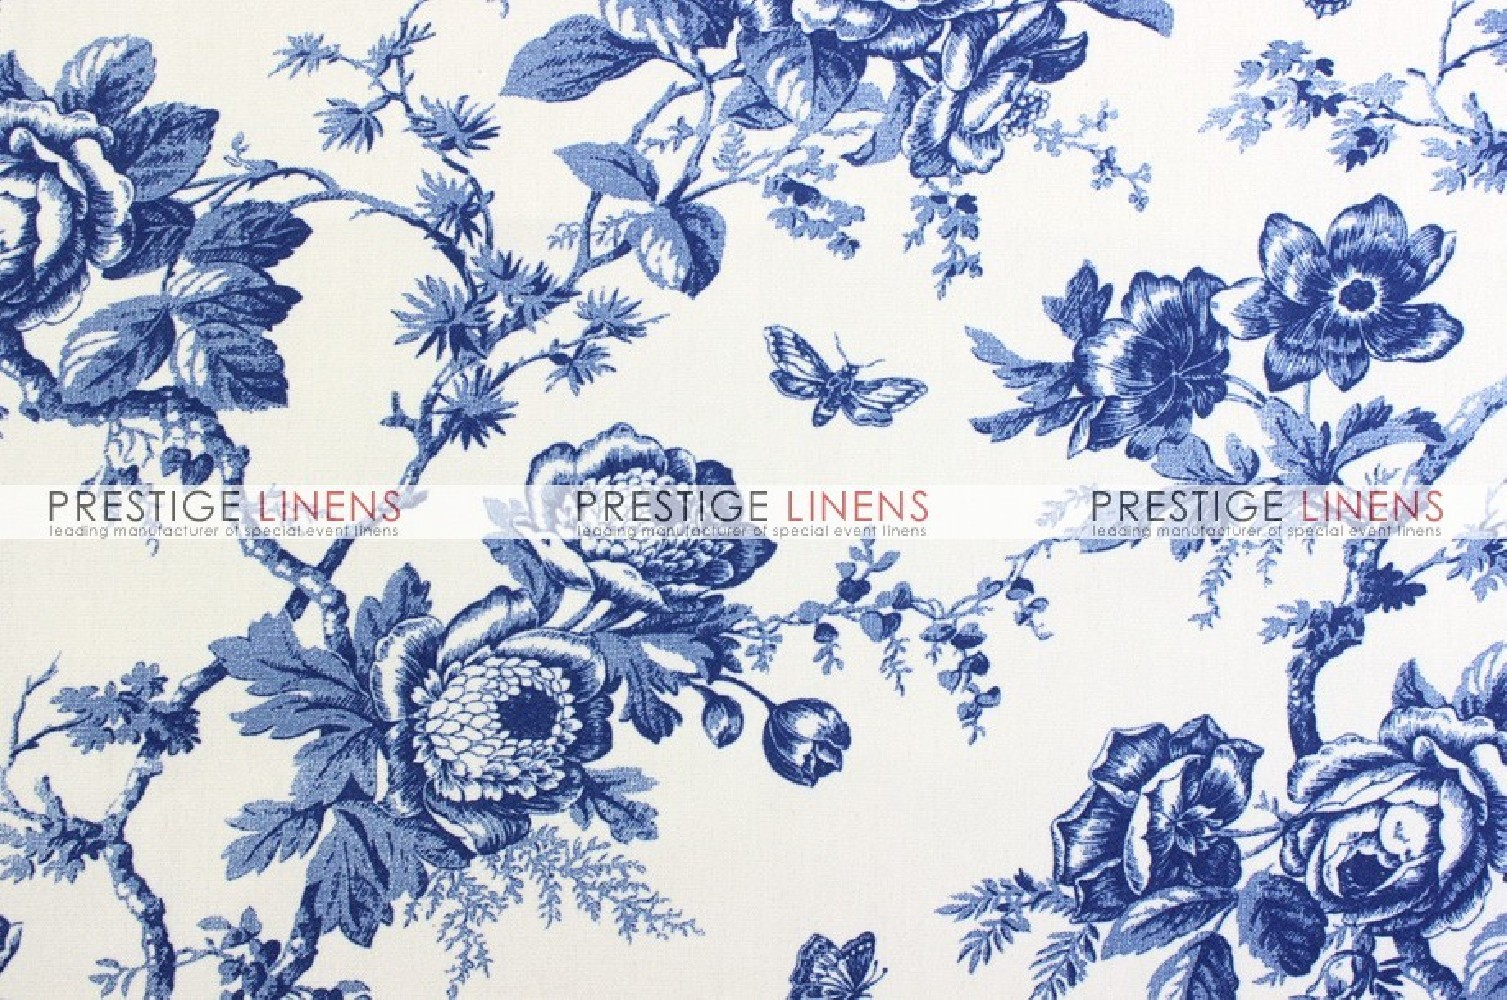 MJS Print - Pottery - Fabric by the yard - Blue - Prestige Linens